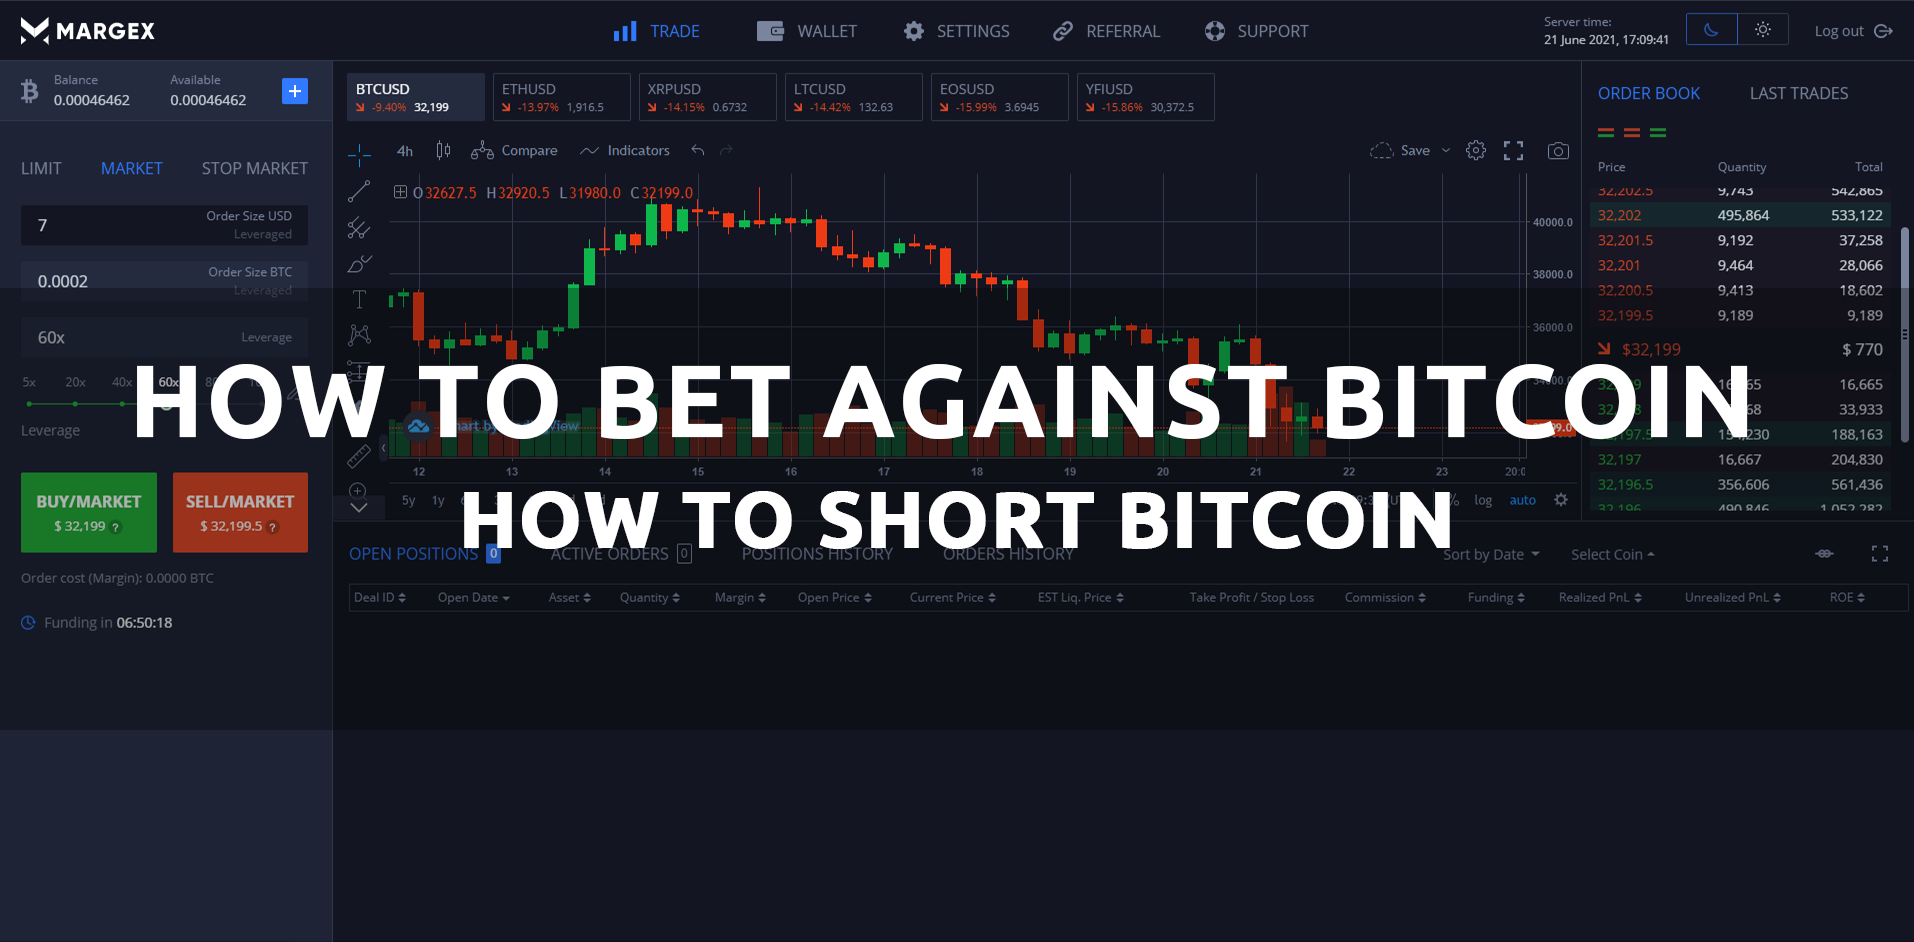 How to bet against bitcoin?